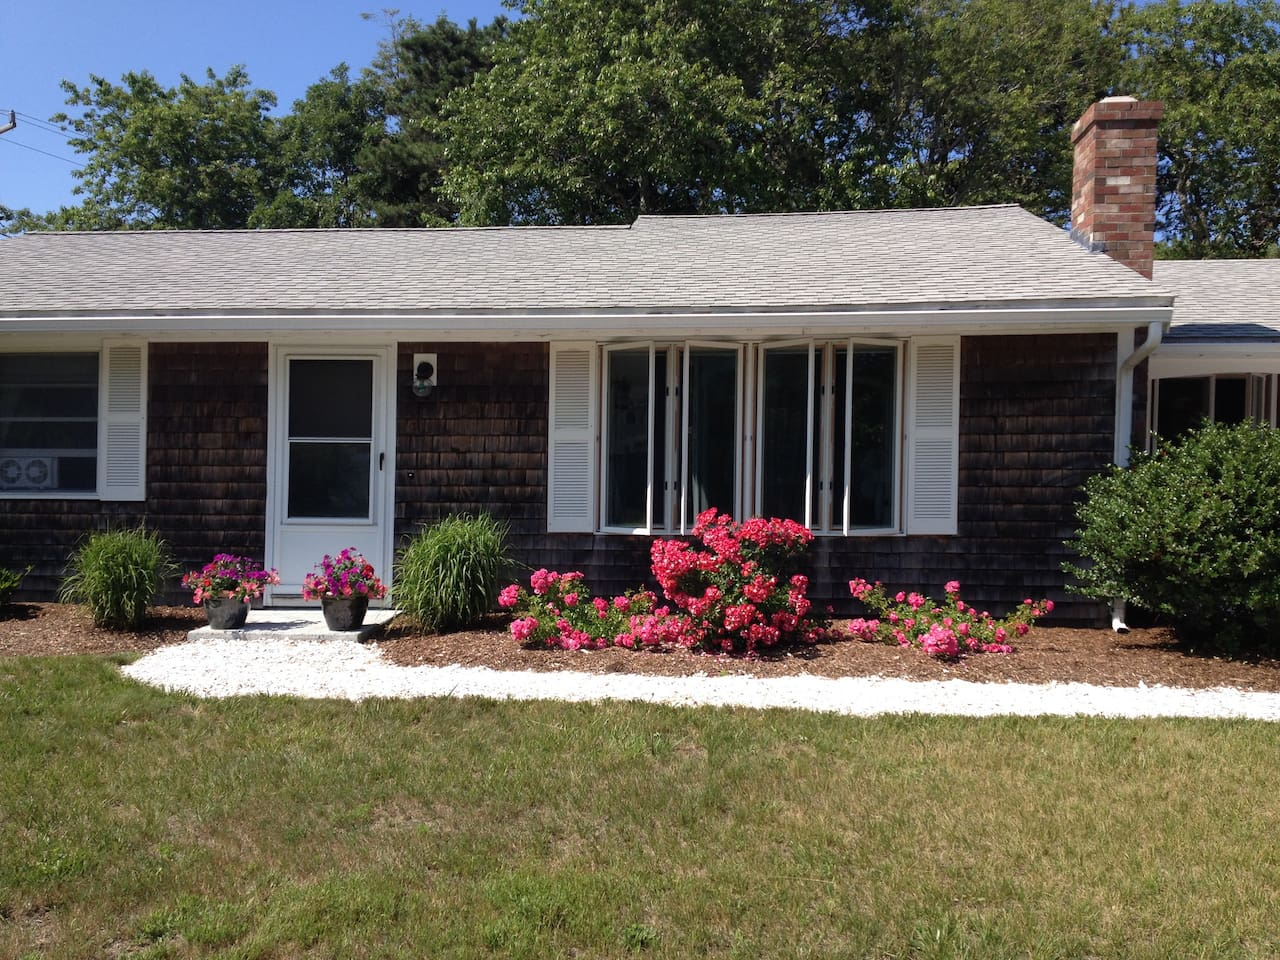 Front of house with roses in Bloom.